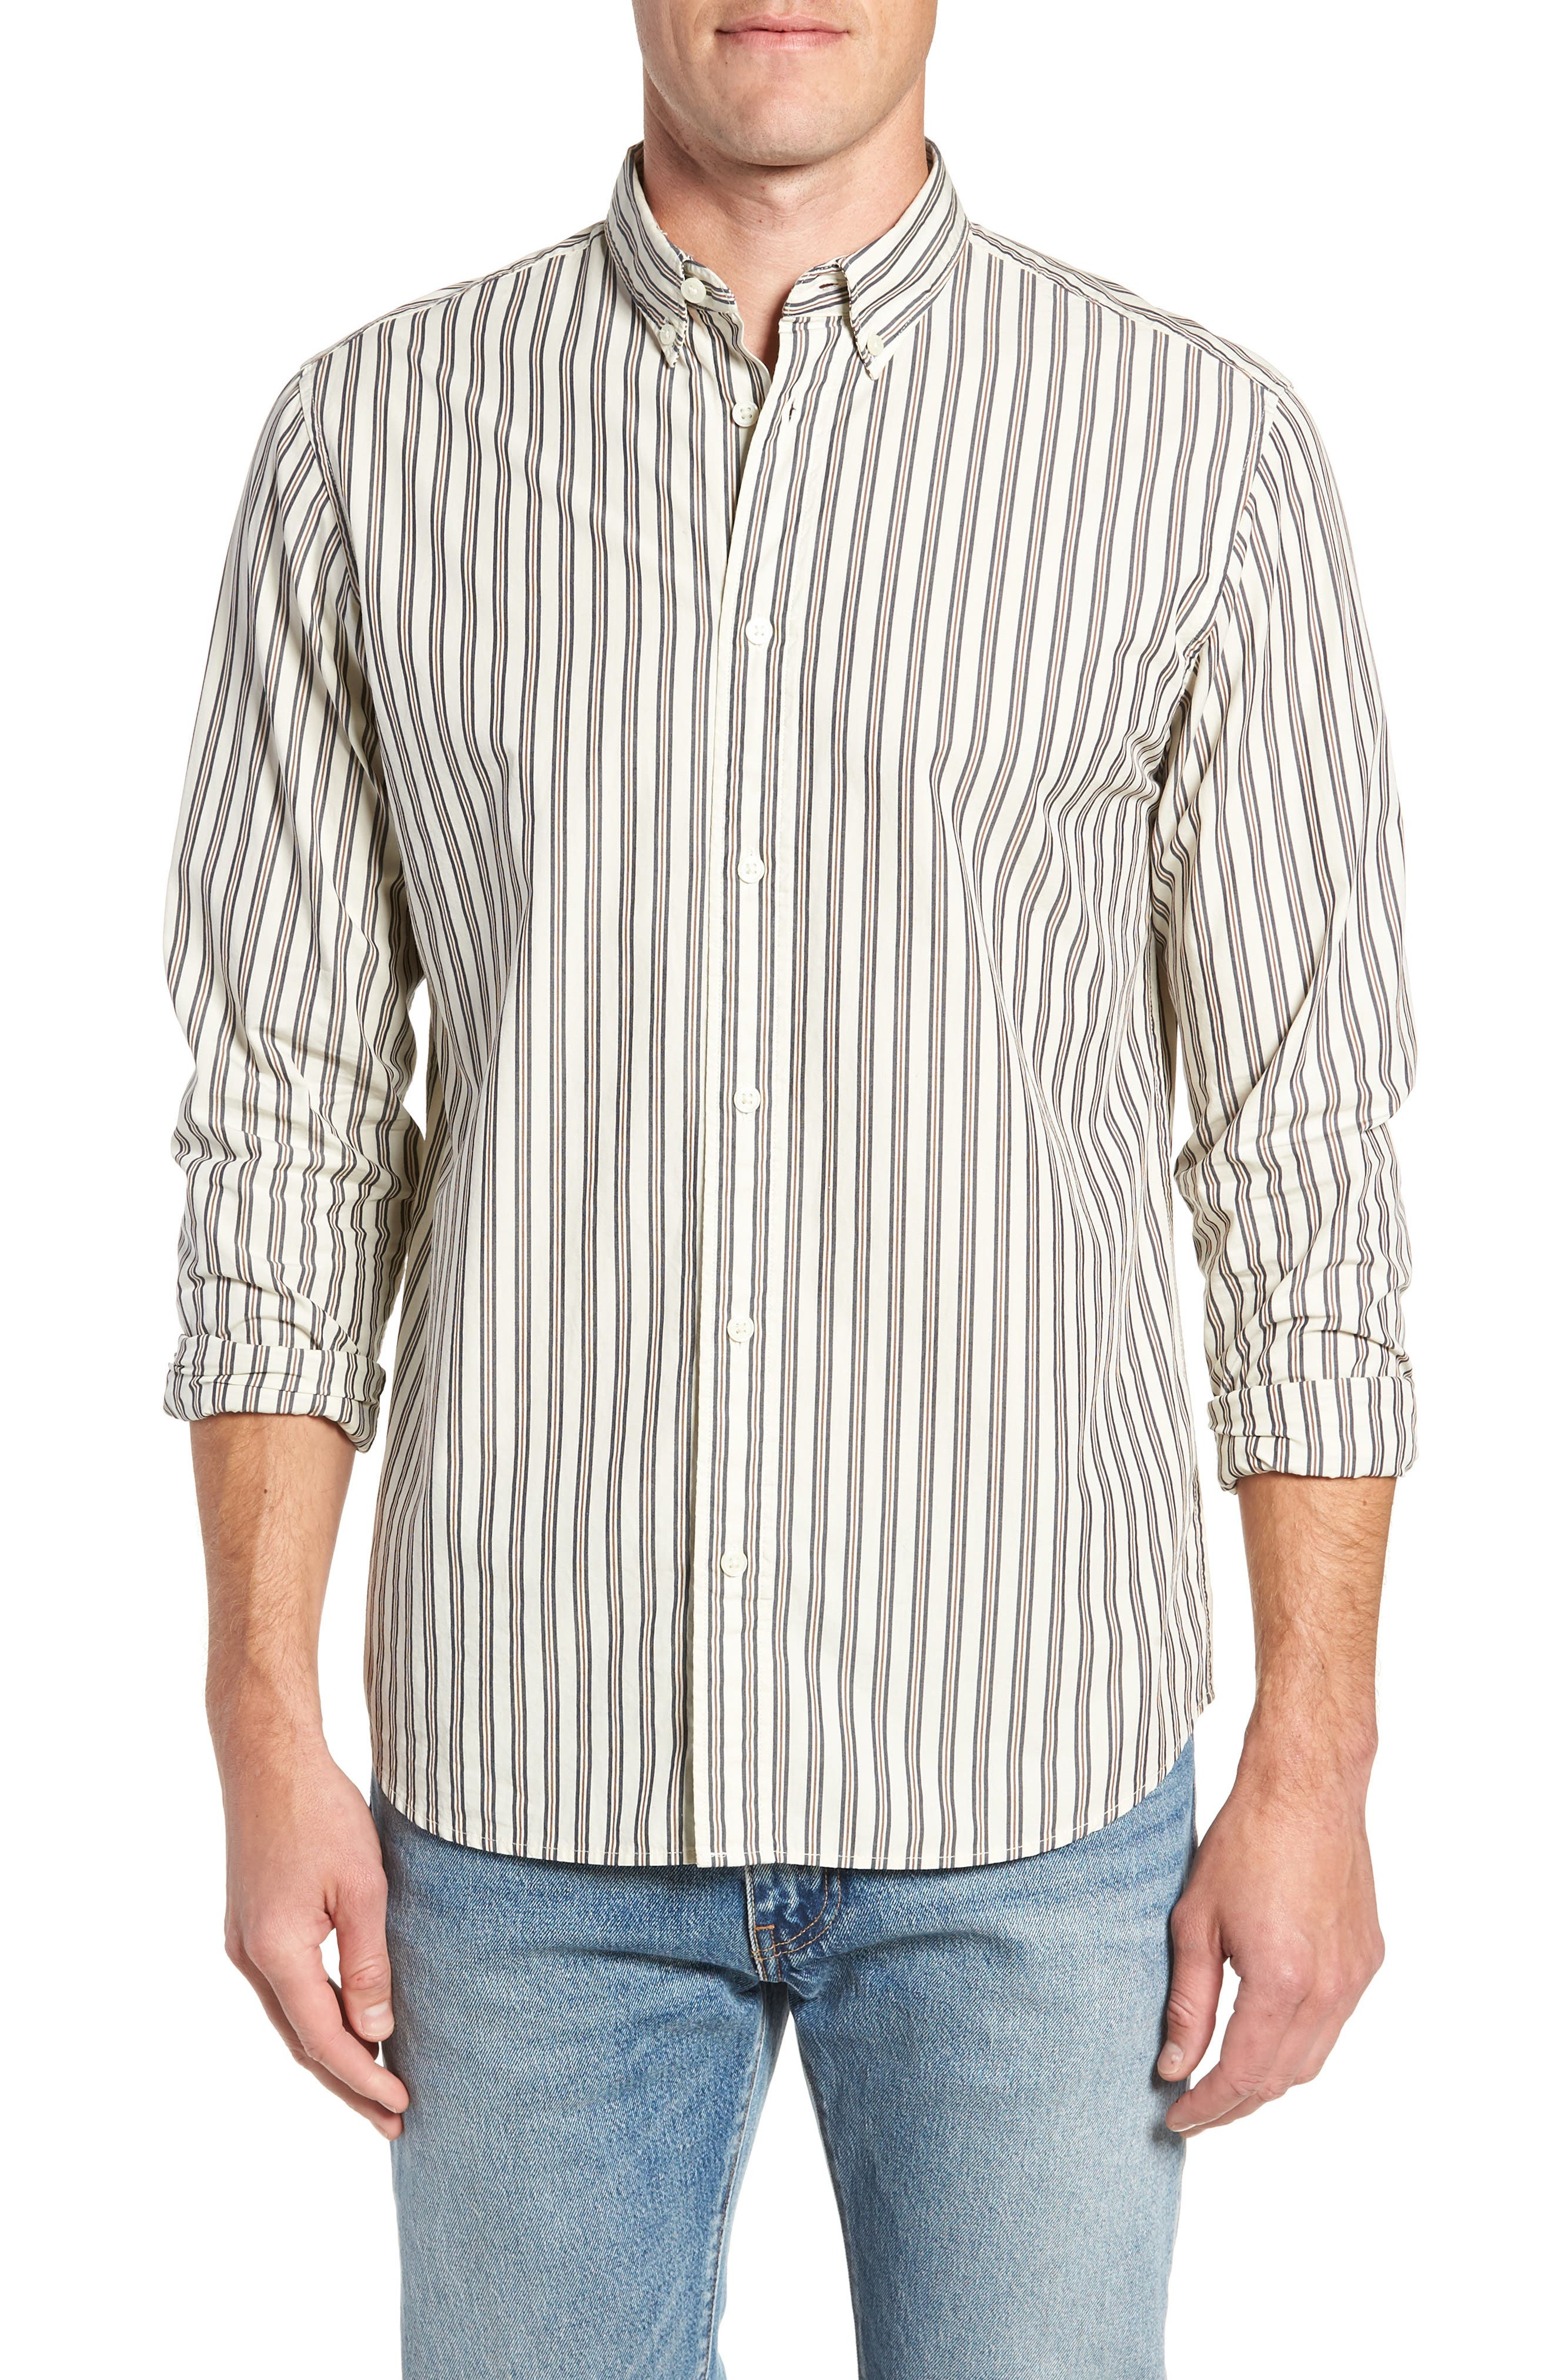 Carl Regular Fit Stripe Sport Shirt,                             Main thumbnail 1, color,                             OYSTER GREY STRIPES